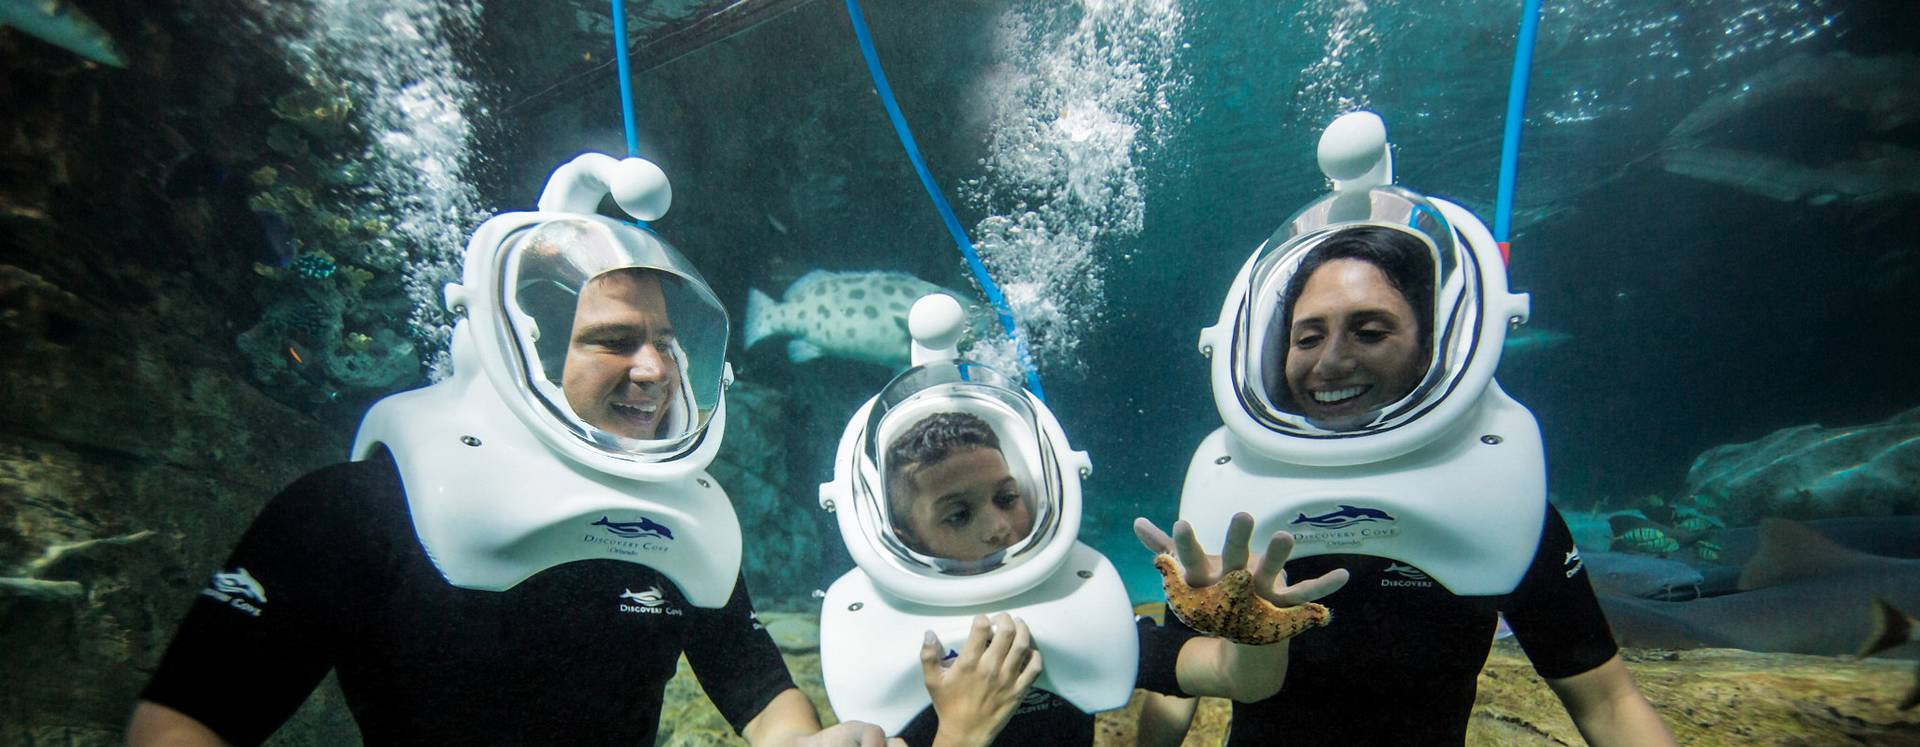 Family underwater wearing oxygen mask helmets in Discovery Cove, Orlando